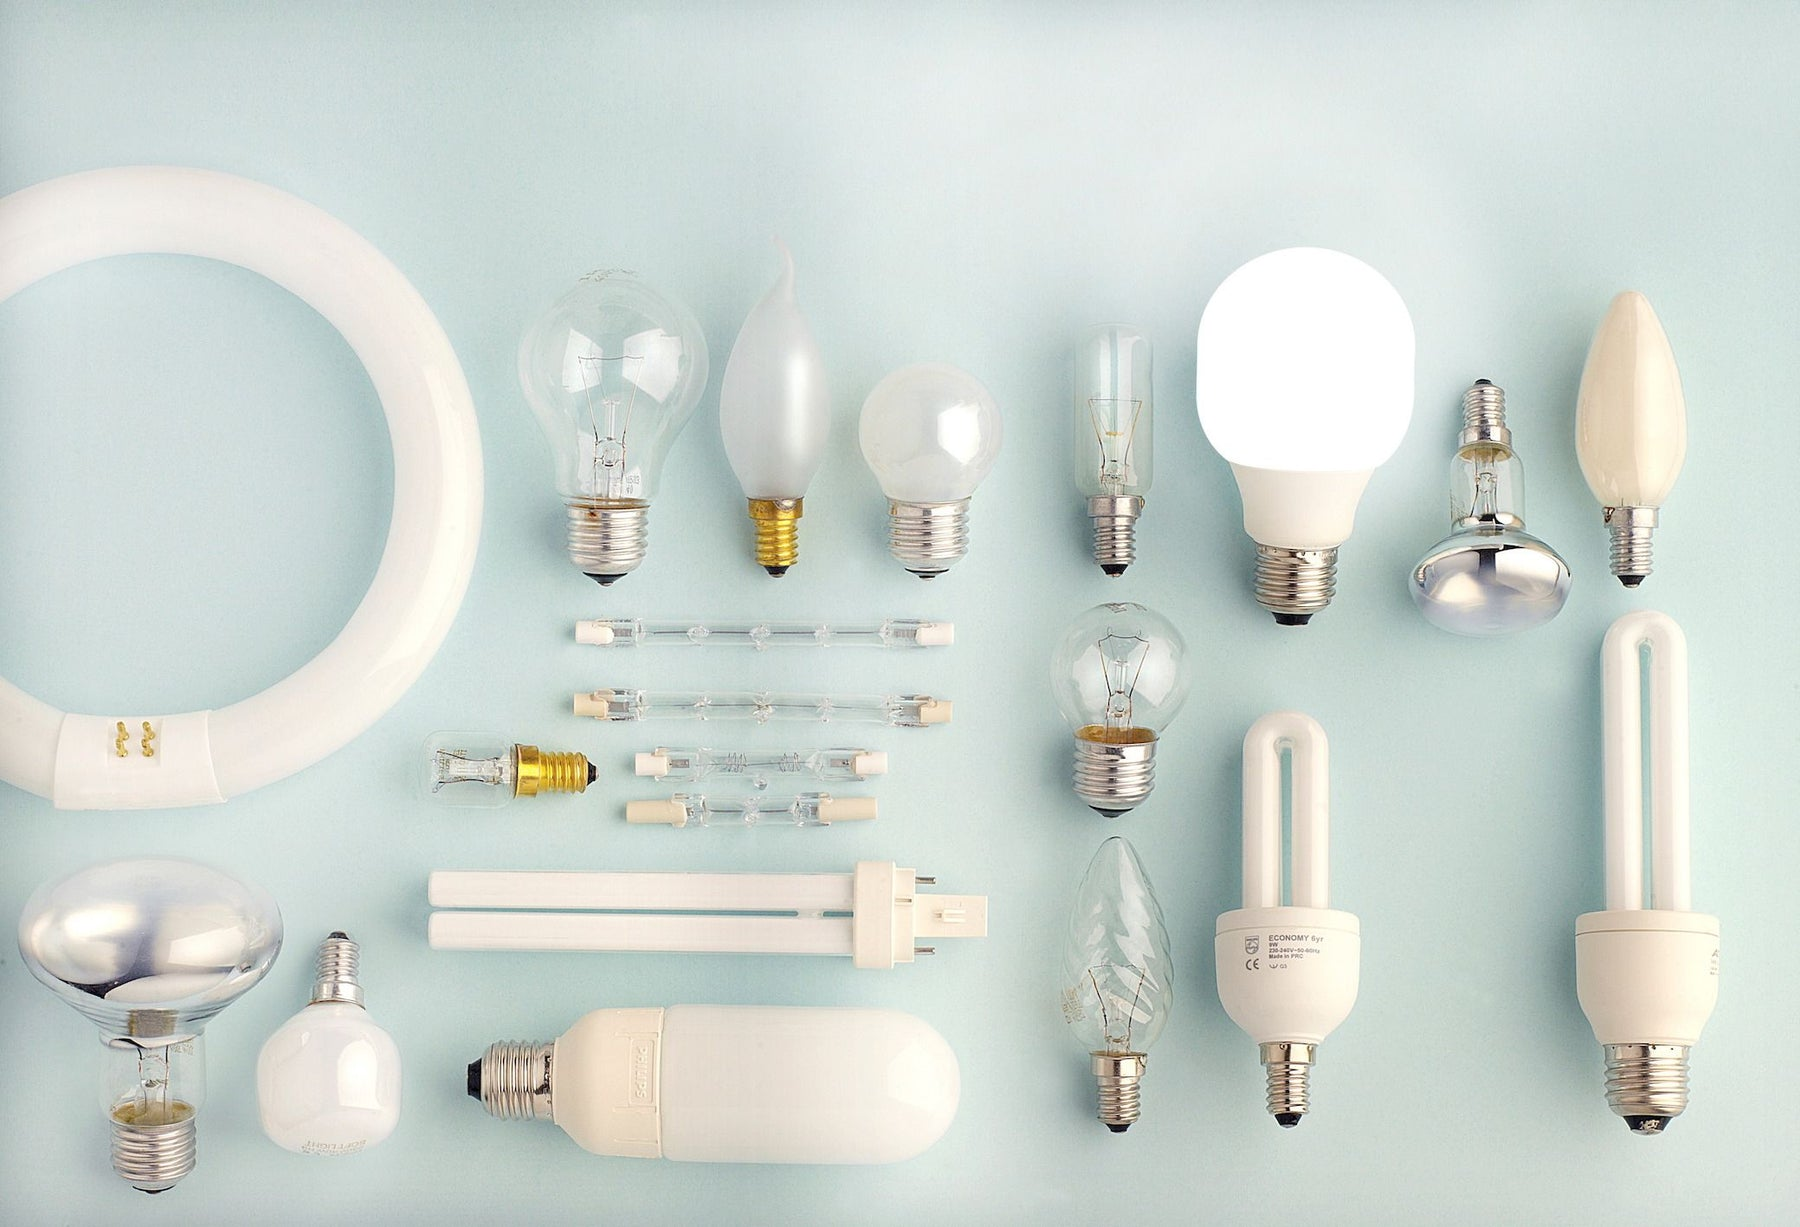 Compact fluorescent bulbs have a wide range of benefits